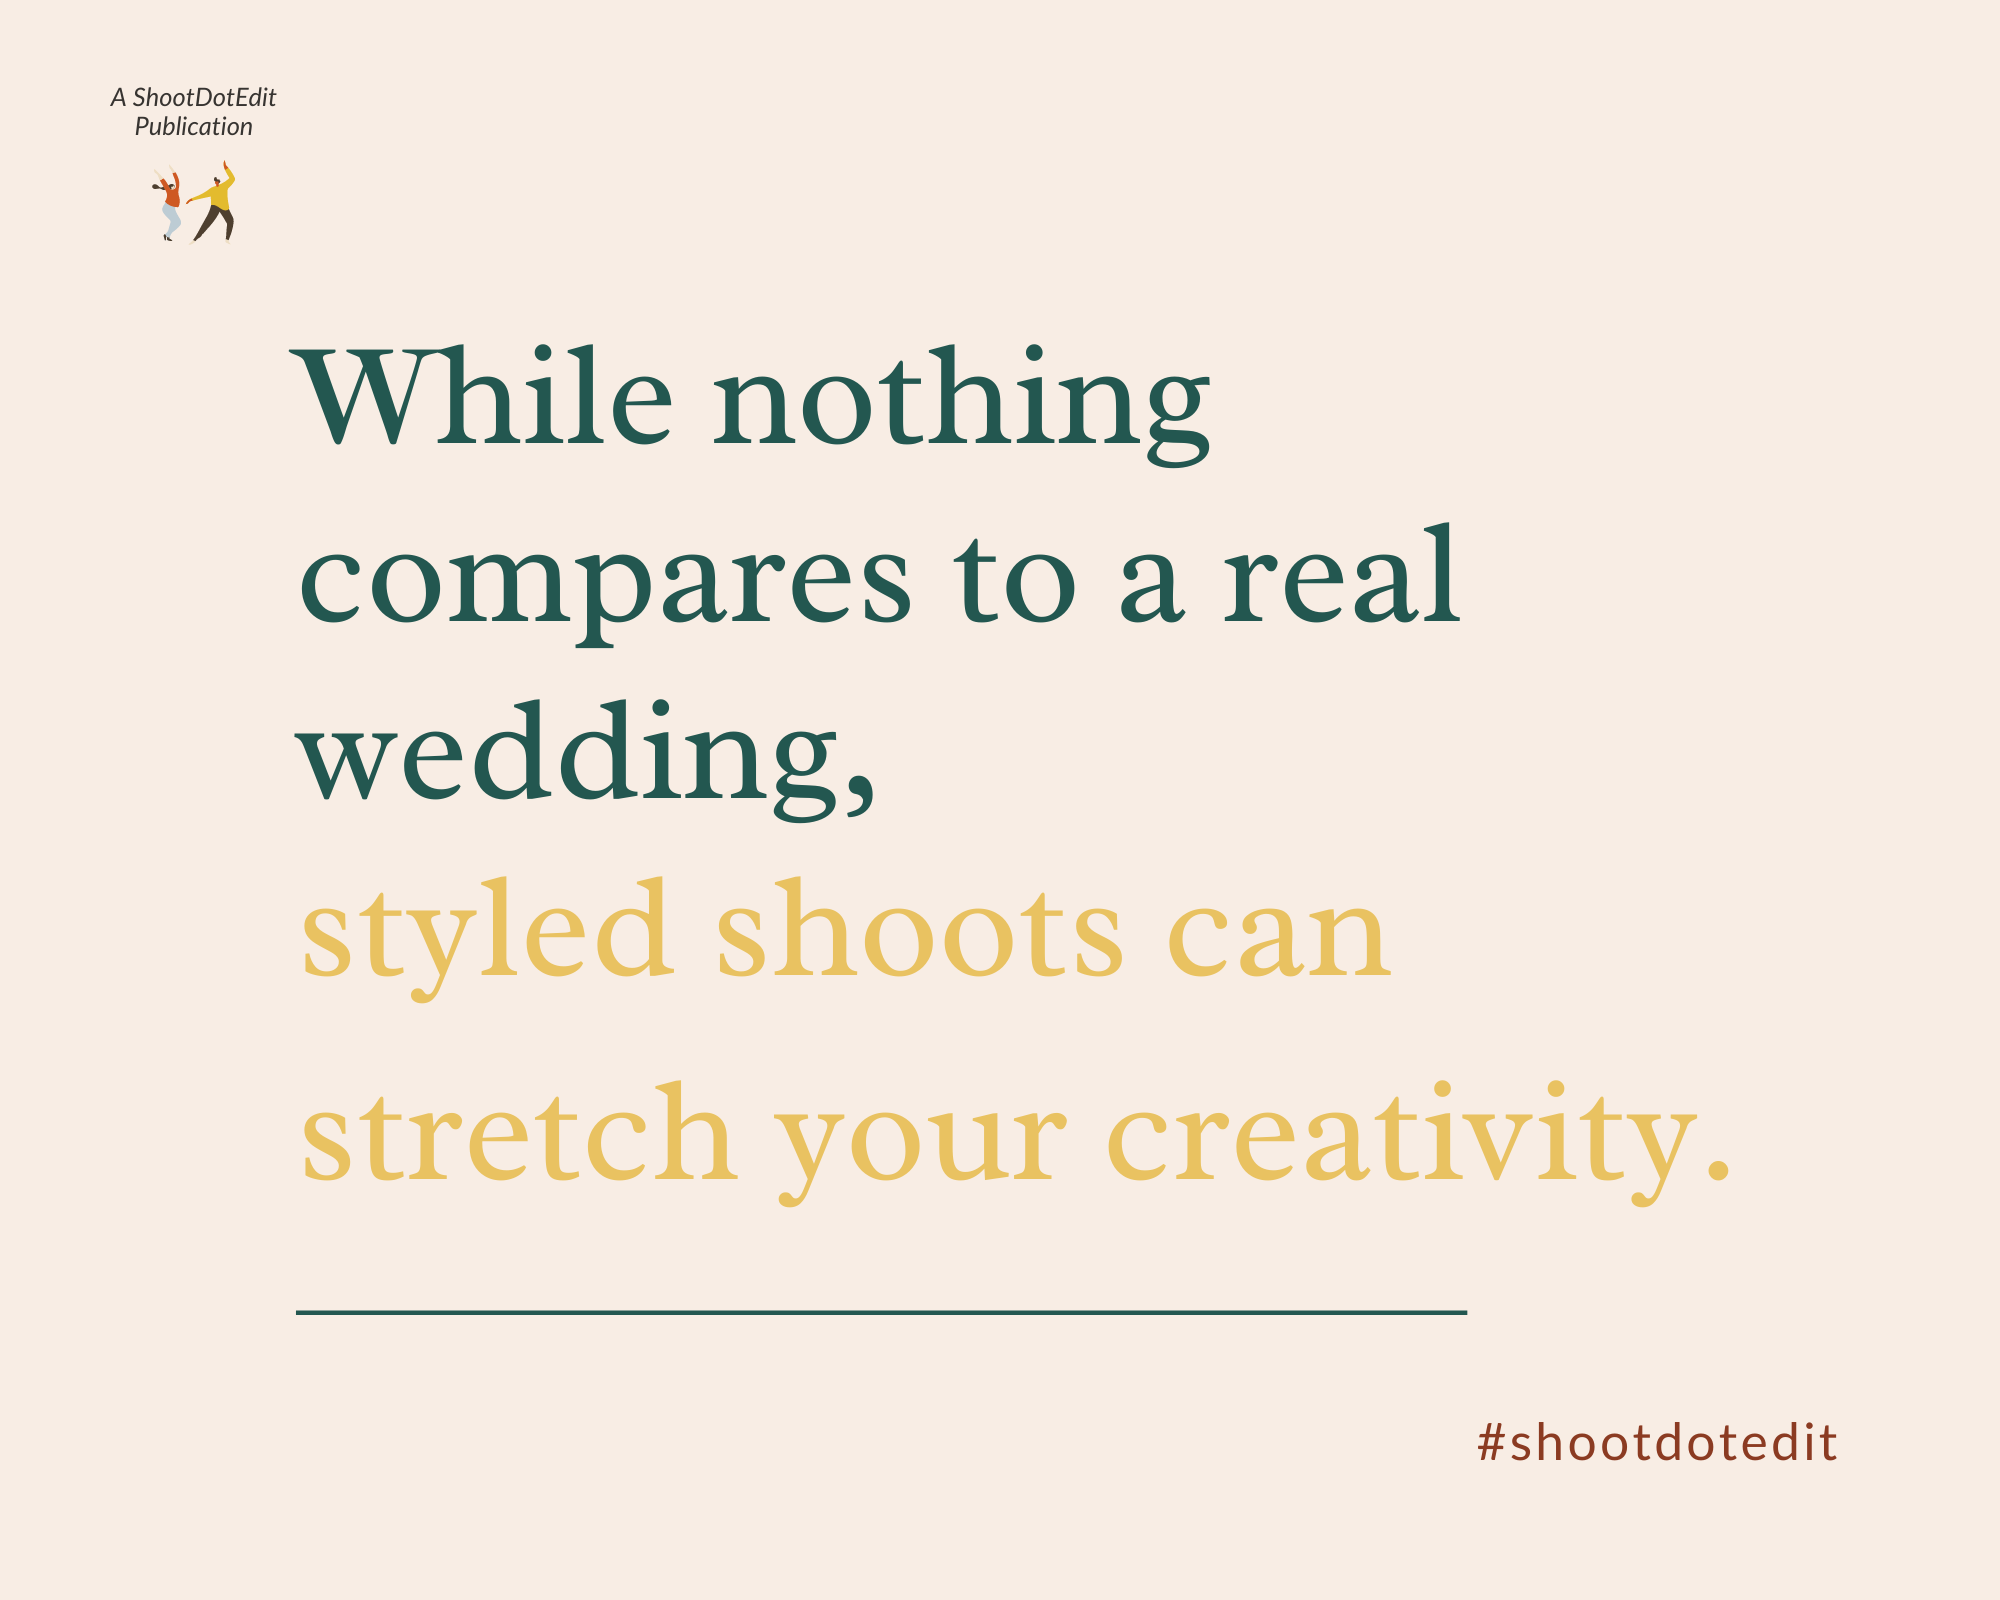 Infographic displaying - While nothing compares to a real wedding, styled shoots can stretch your creativity